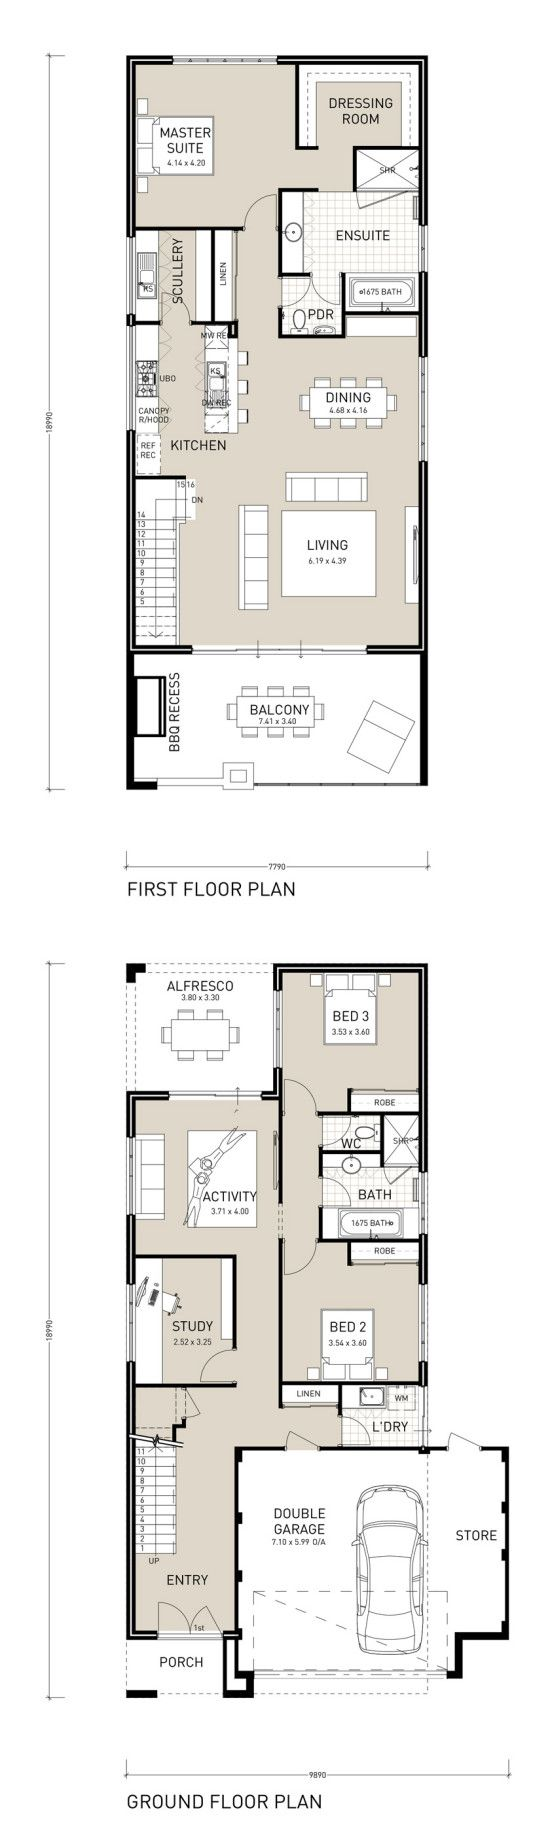 43 best Reverse Living House Plans images on Pinterest | Floor plans ...